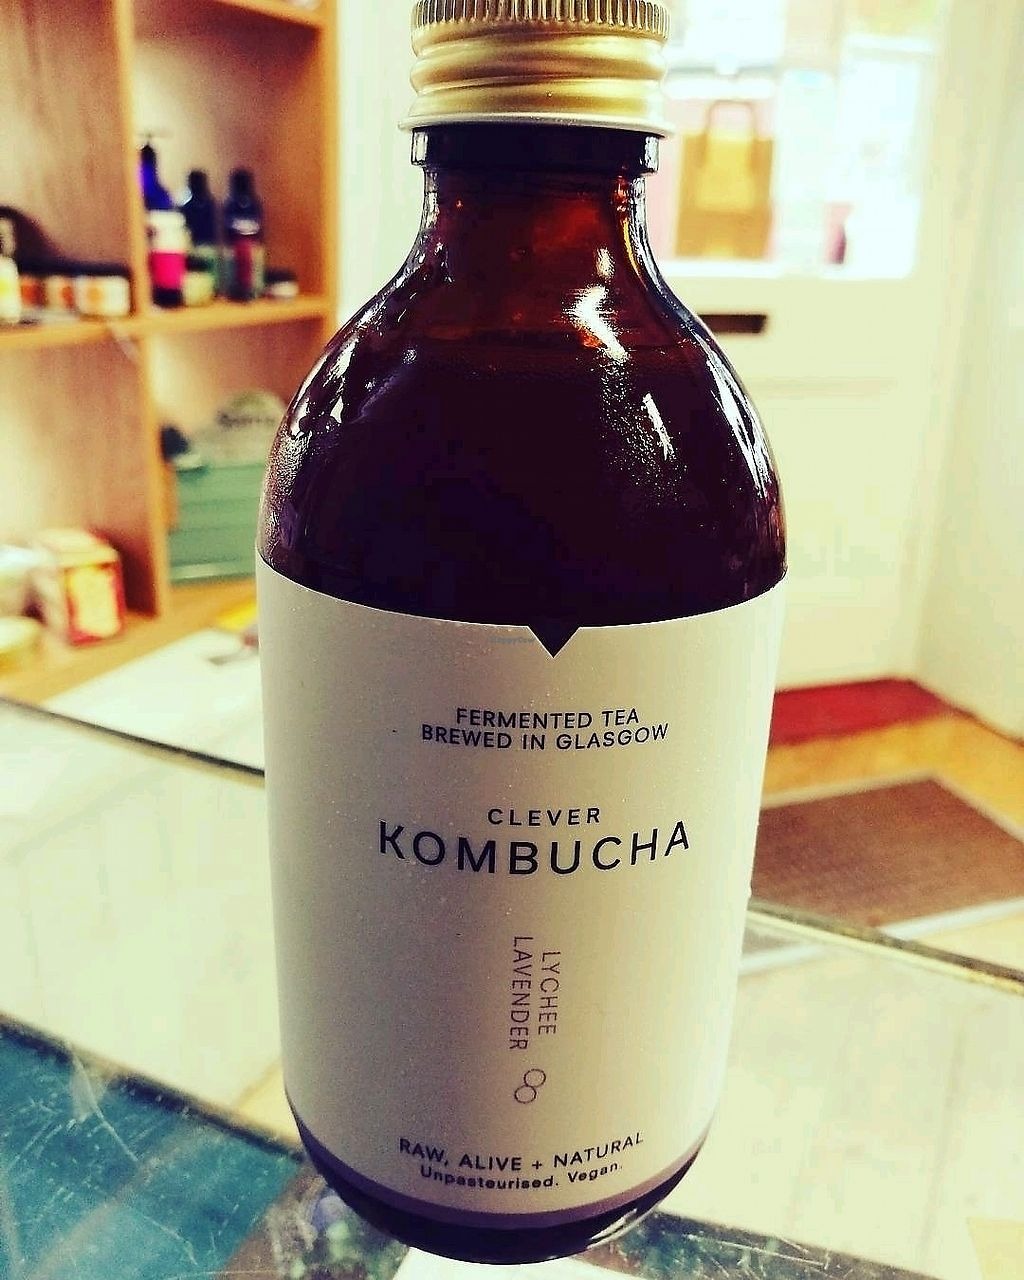 """Photo of Peebles Superstore  by <a href=""""/members/profile/craigmc"""">craigmc</a> <br/>kombucha <br/> November 13, 2017  - <a href='/contact/abuse/image/98997/325292'>Report</a>"""